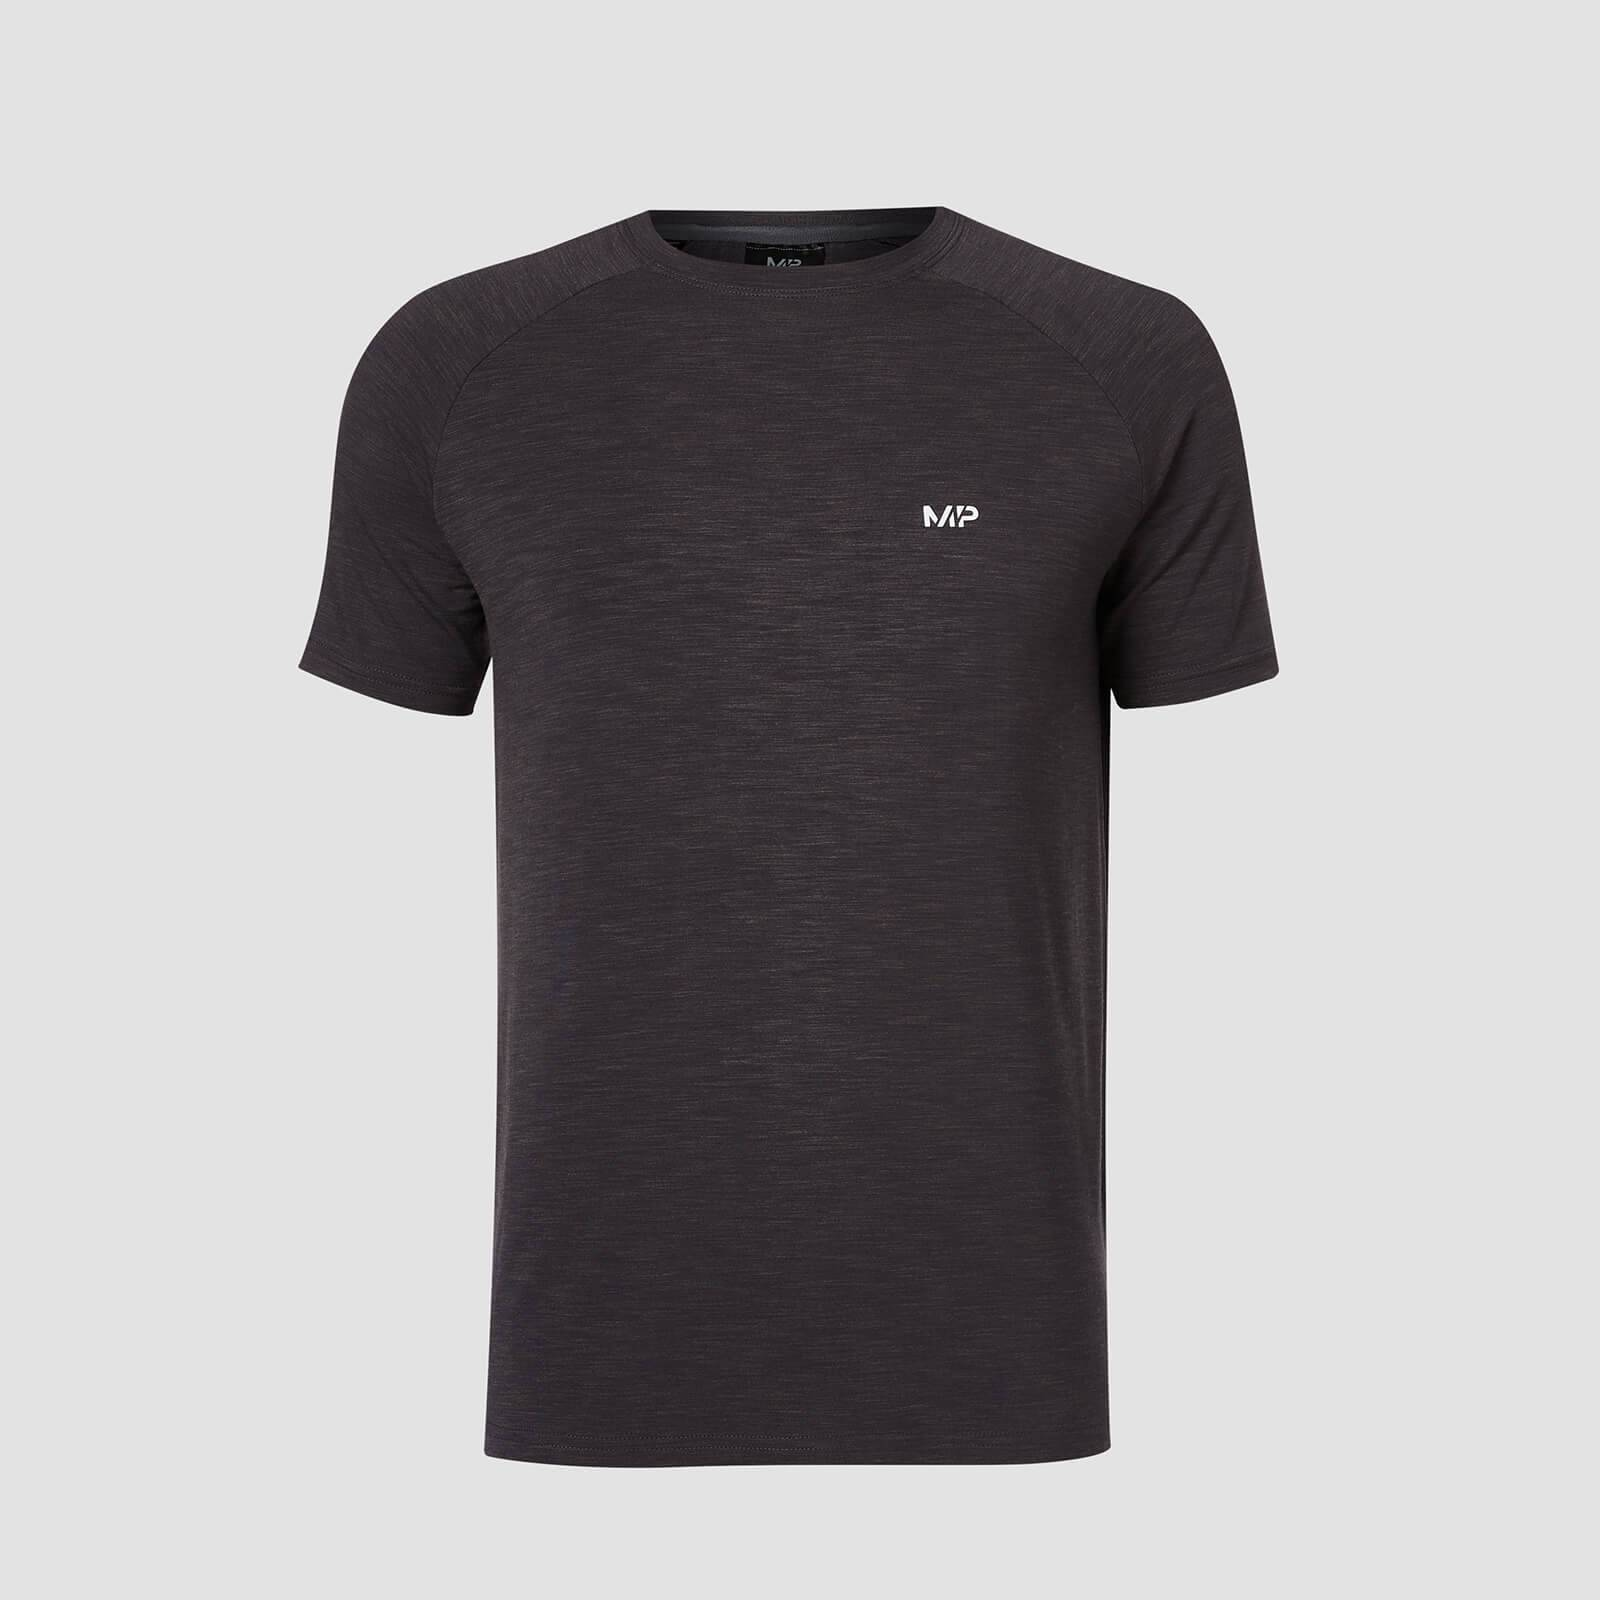 Myprotein T-shirt Performance Short Sleeve MP - Nero/Carbone - XS